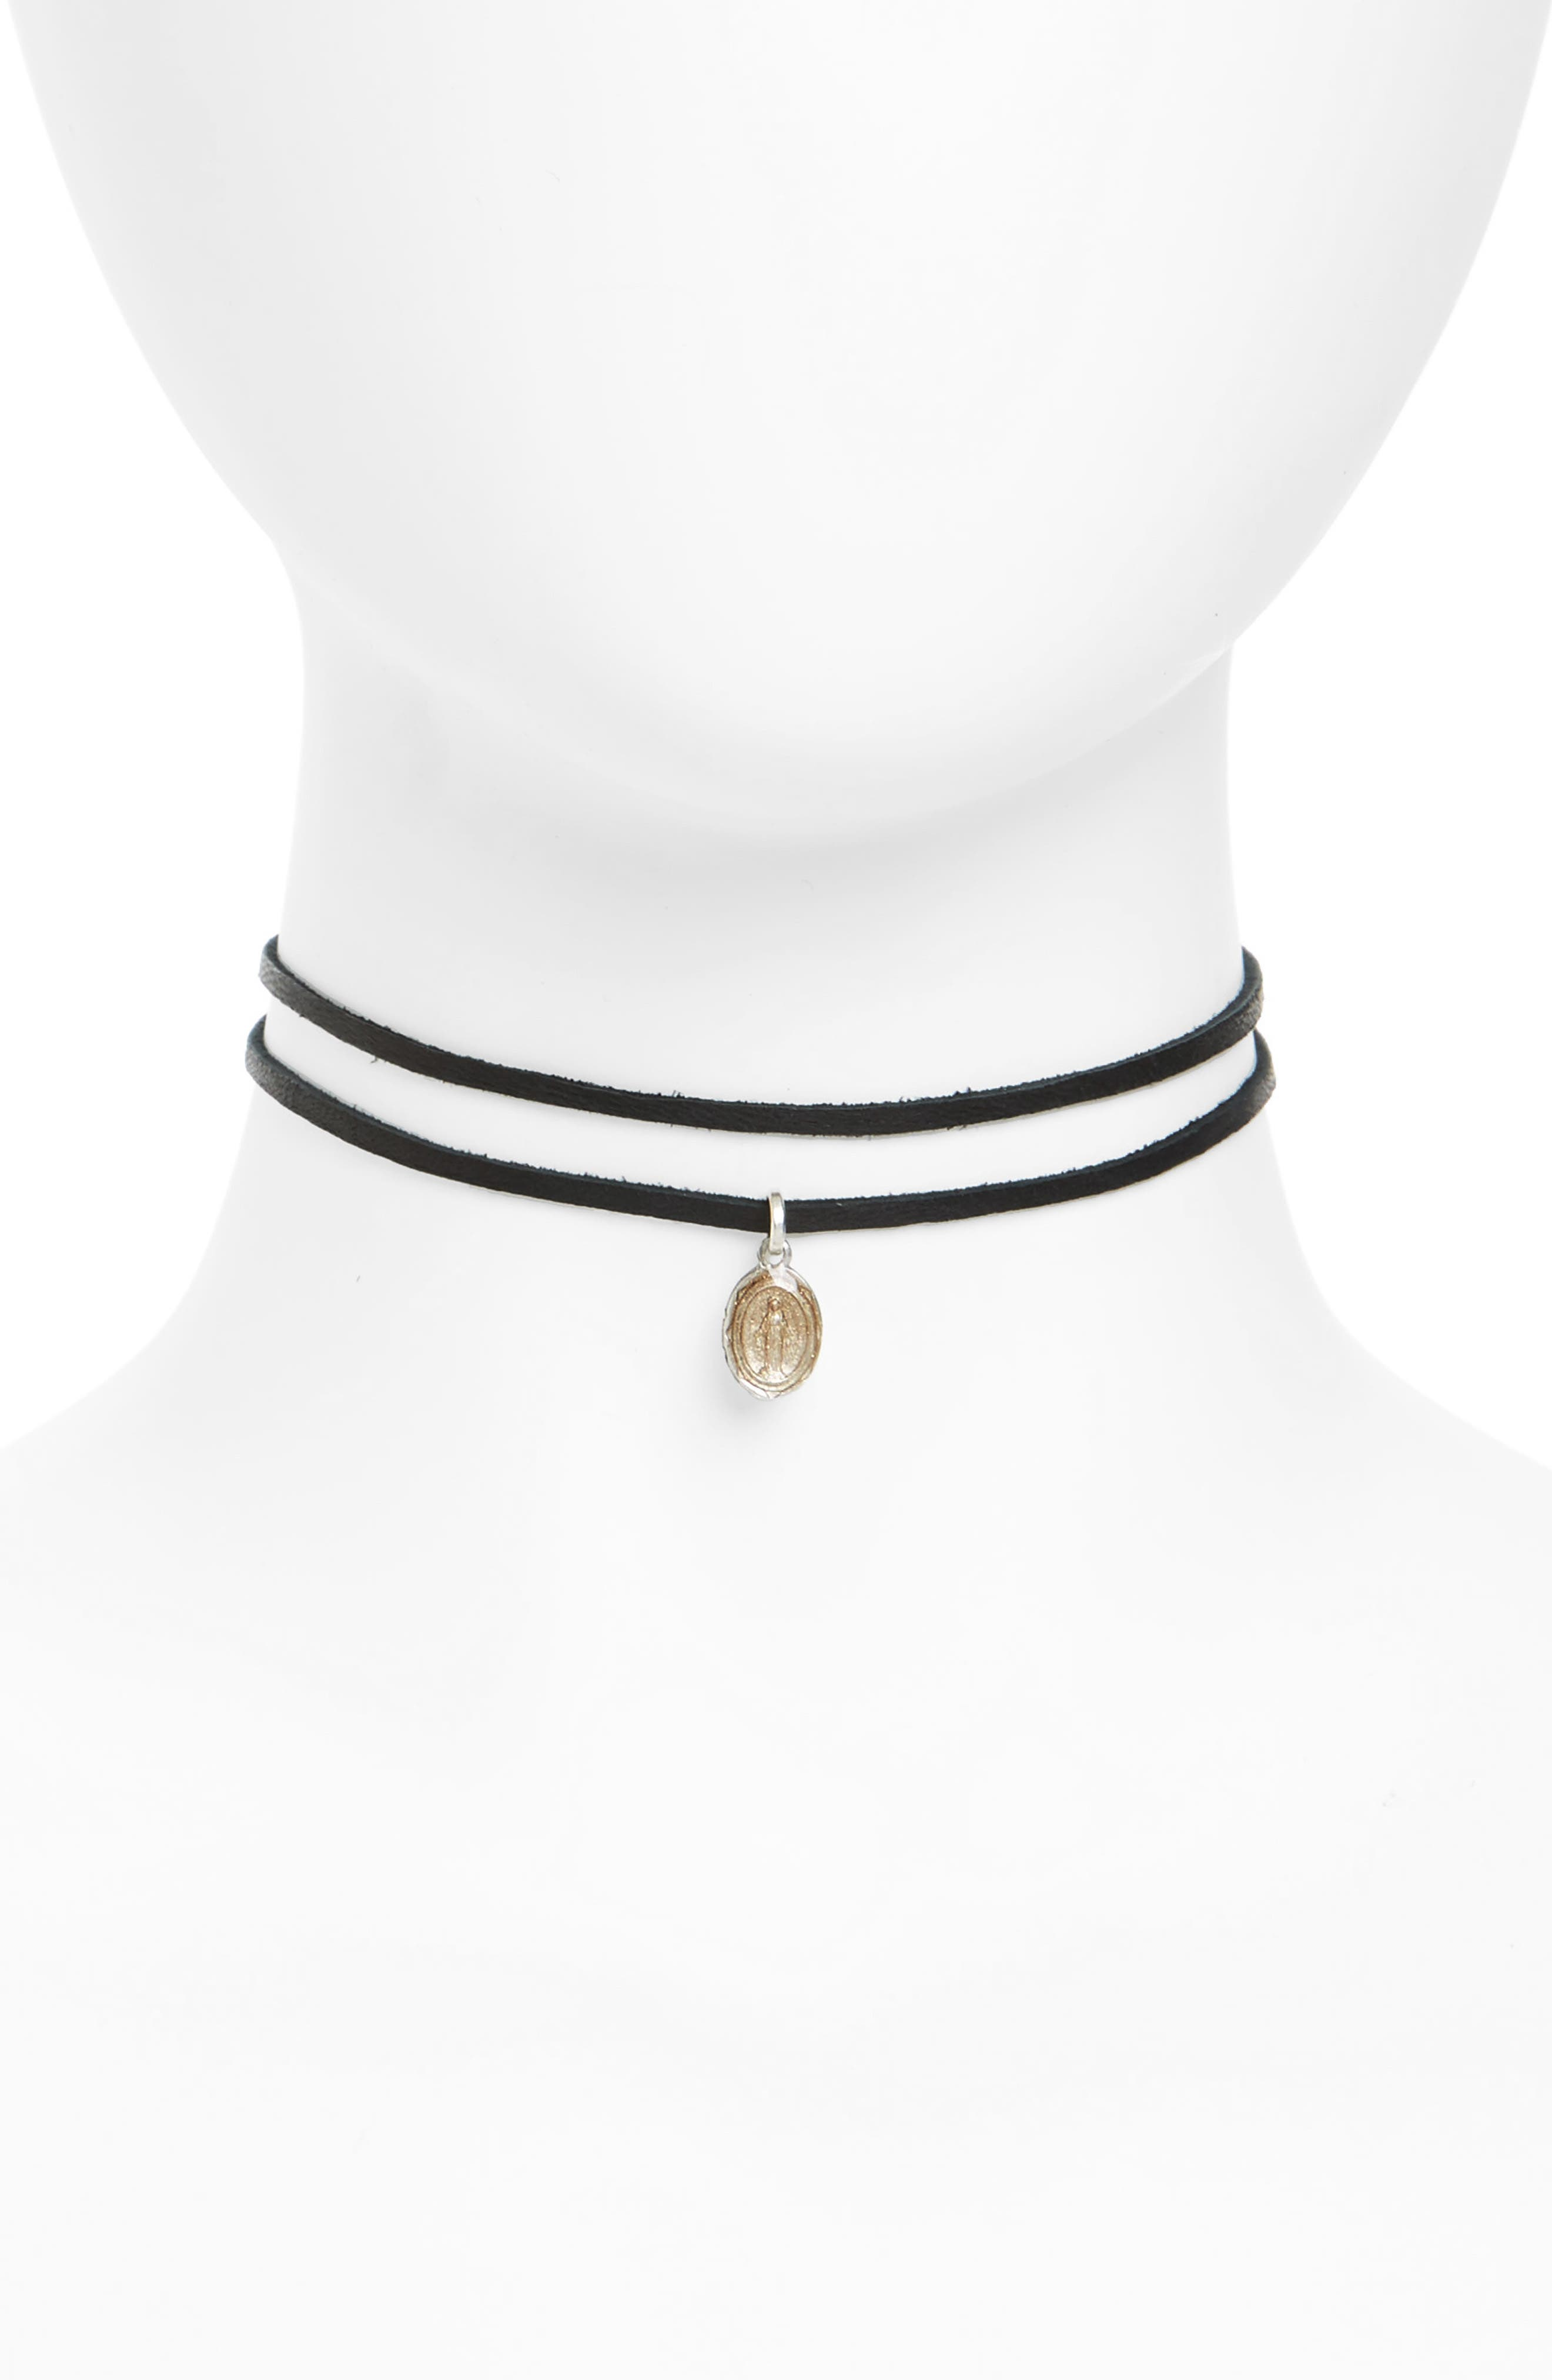 VIRGINS SAINTS & ANGELS Virgin of Miracles Choker